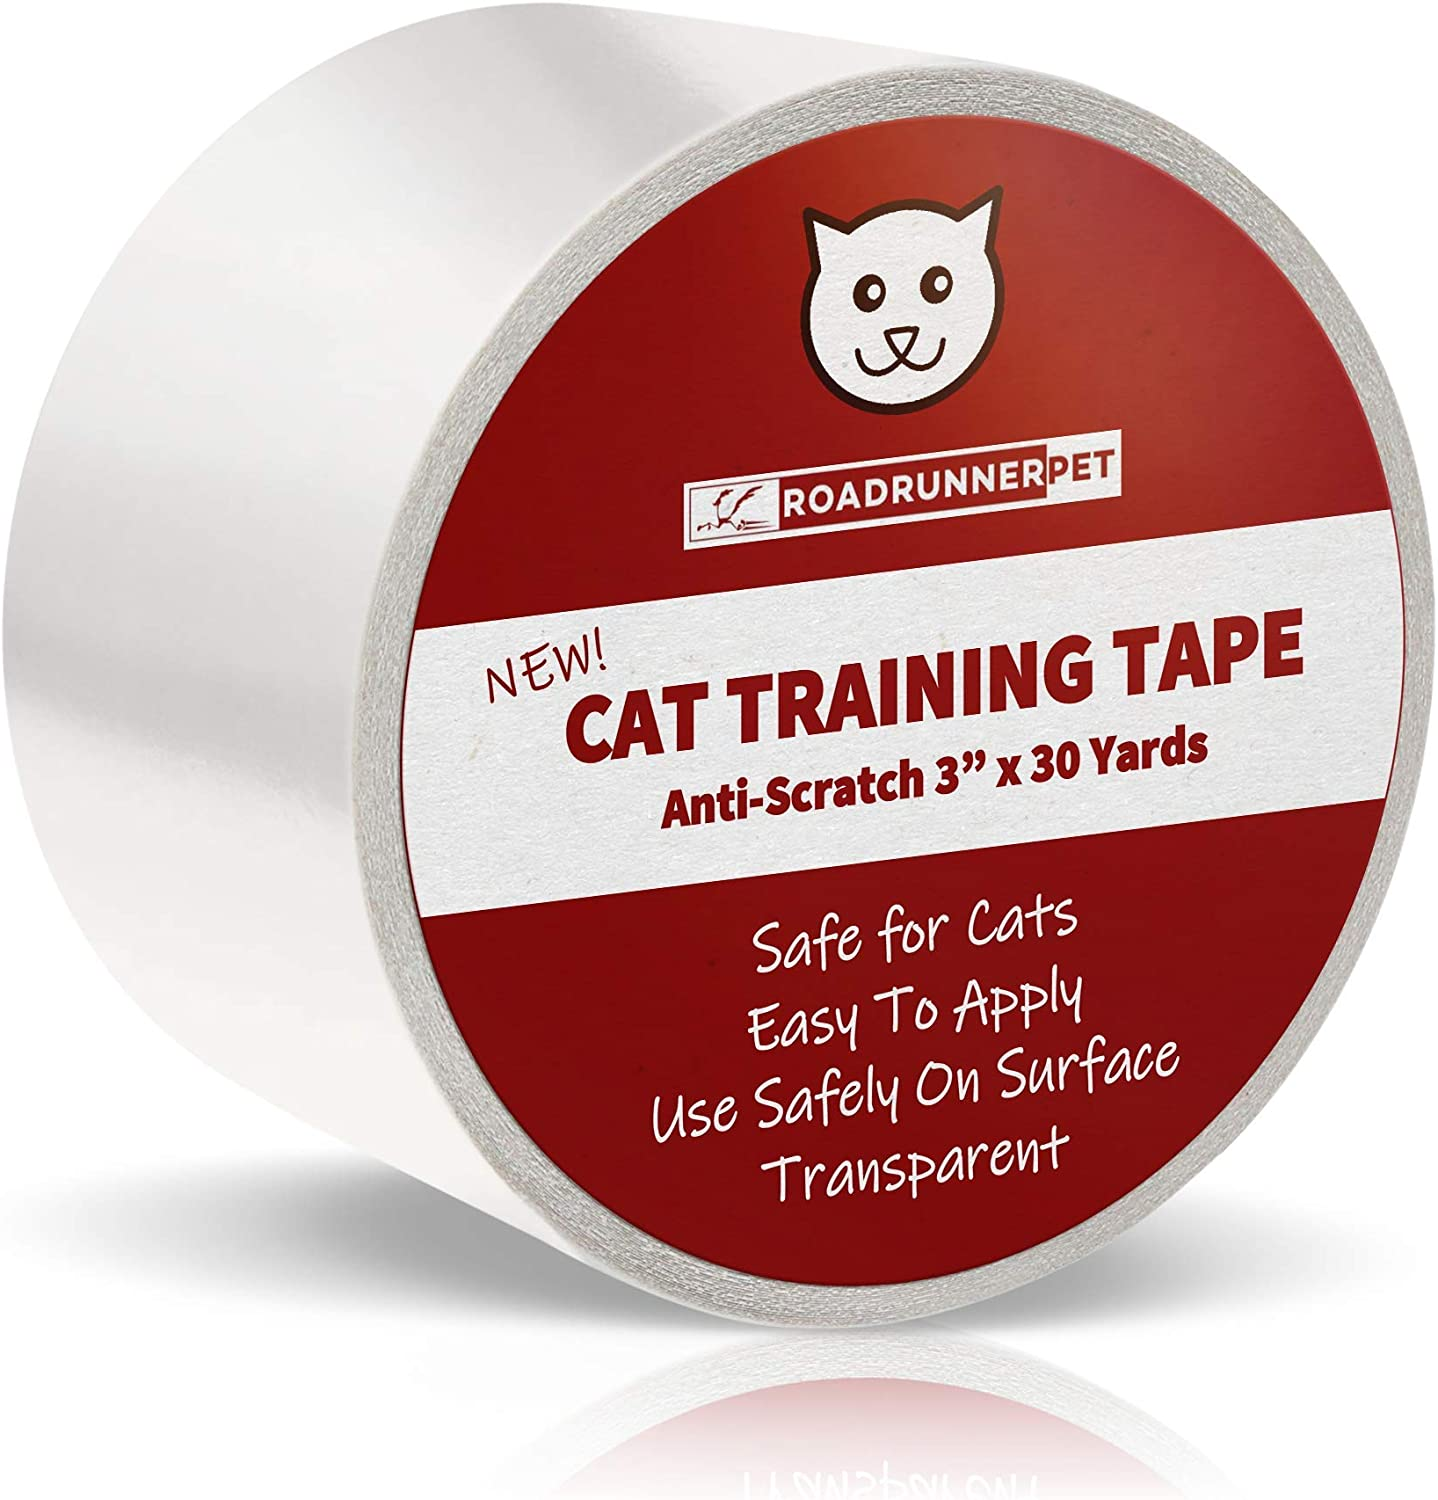 Roadrunner Pet Anti-Scratch Cat Training Tape, Cat Scratch Prevention Tape for Furniture, Cat Training Tape, Pet Scratch Protector, 3 Inches x 30 Yards